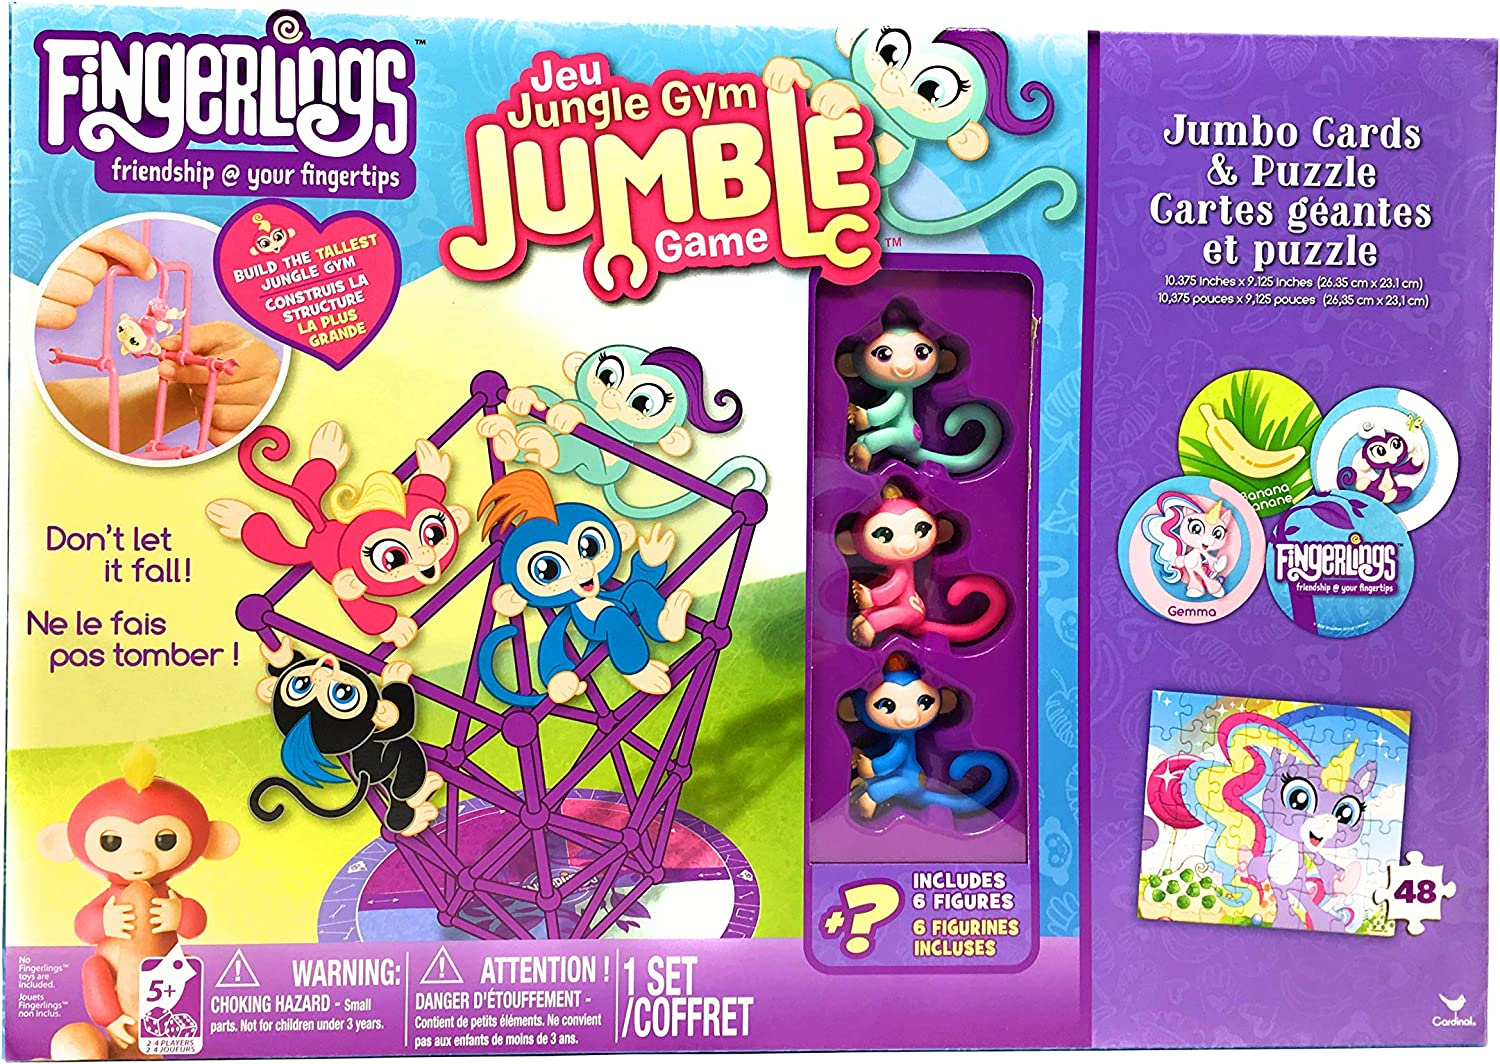 Fingerlings Jungle Gym Jumble Game Monkey Toy 2-4 Players Brand New